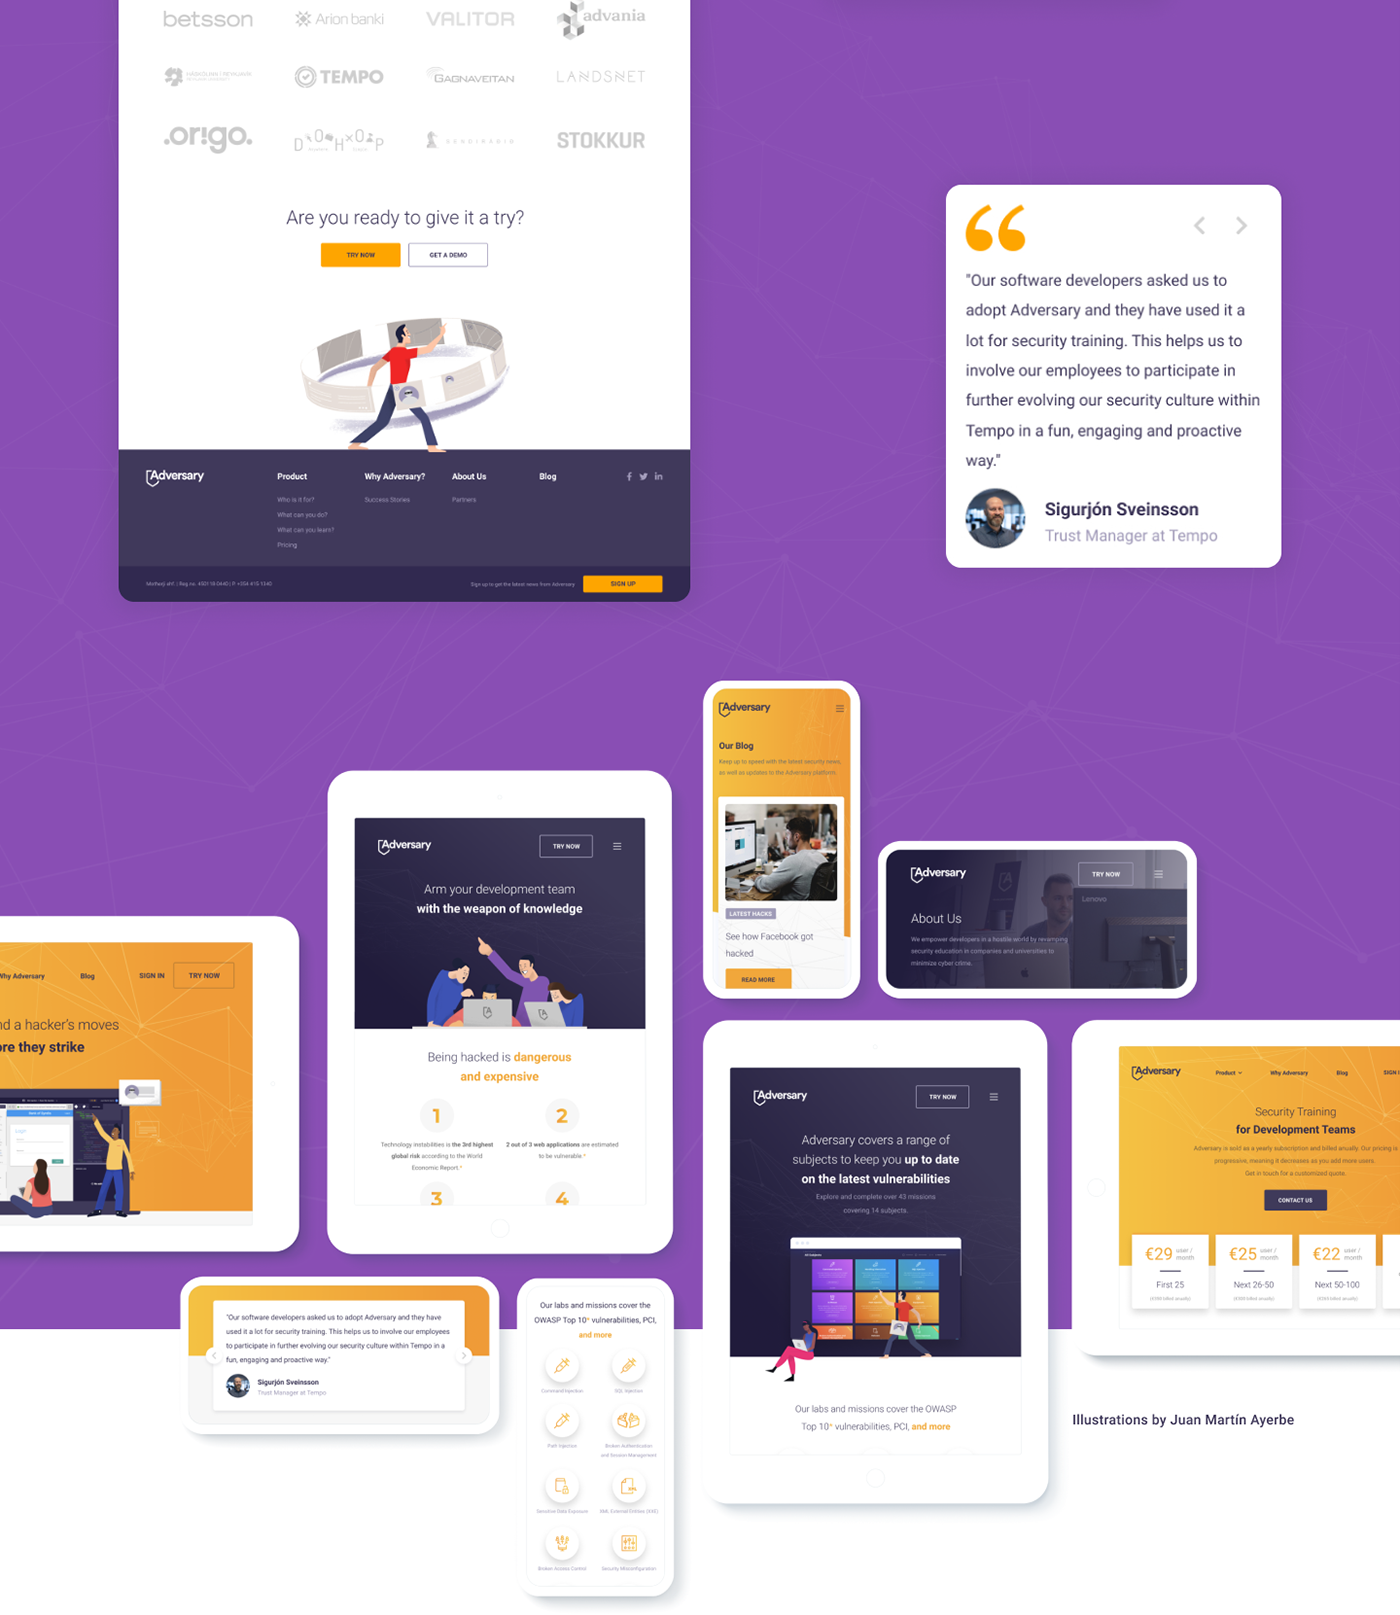 cybersecurity Education gamification ILLUSTRATION  learning Responsive Design ux/ui Website